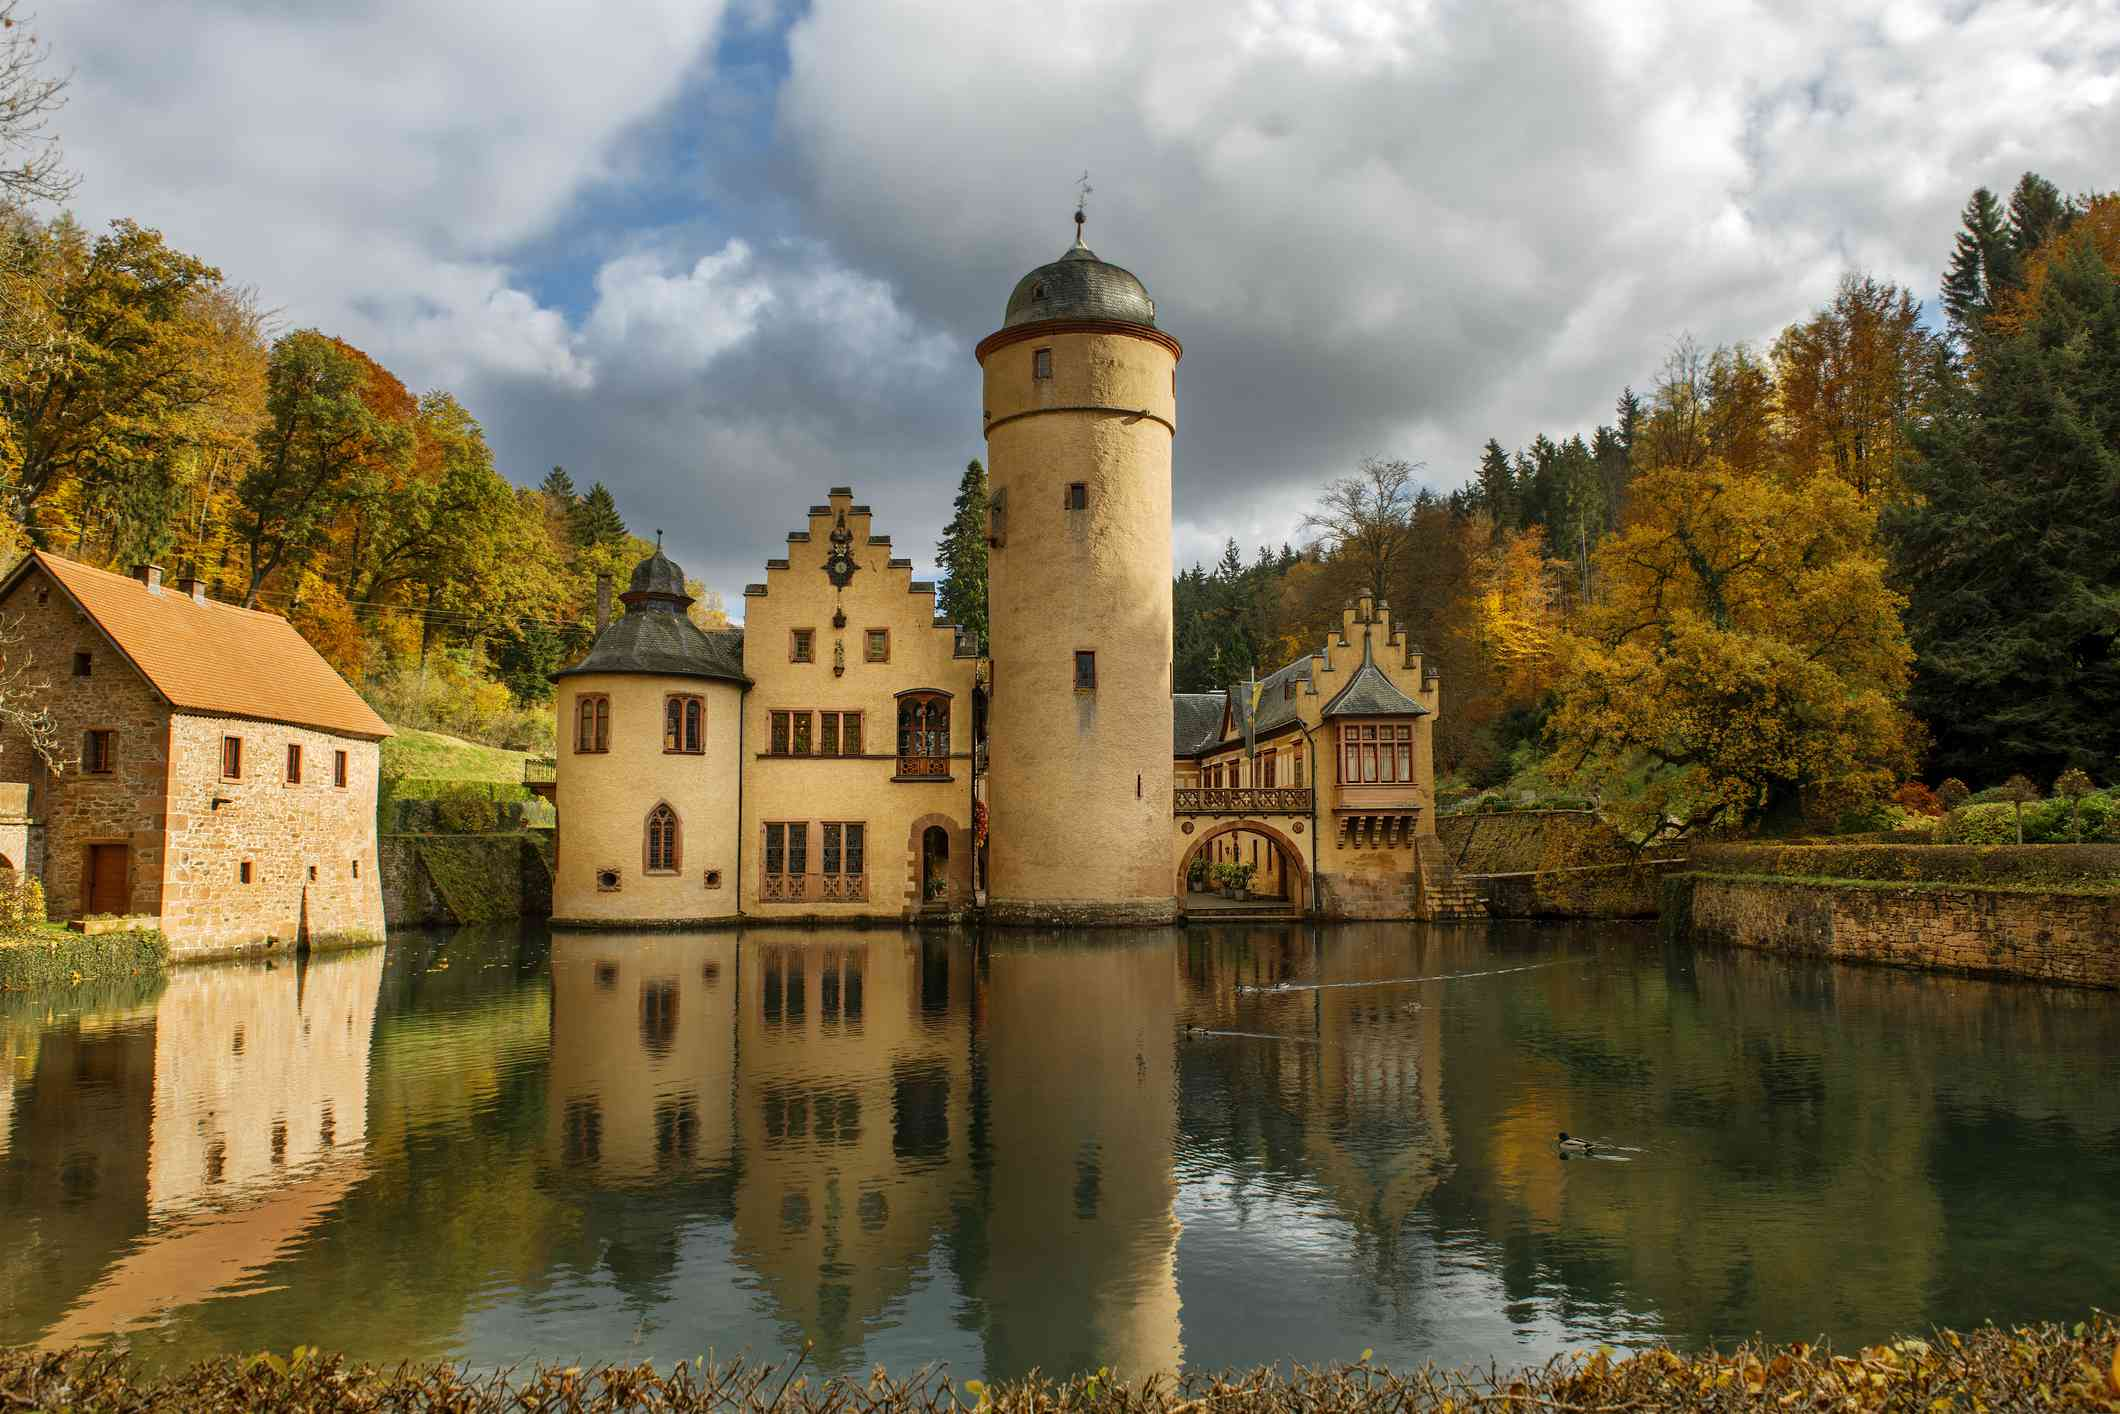 Medieval moated castle, Mespelbrunn Castle, built in the early 1400's is situated in the Elsava valley of the Spessart forest, Bavaria, Germany.